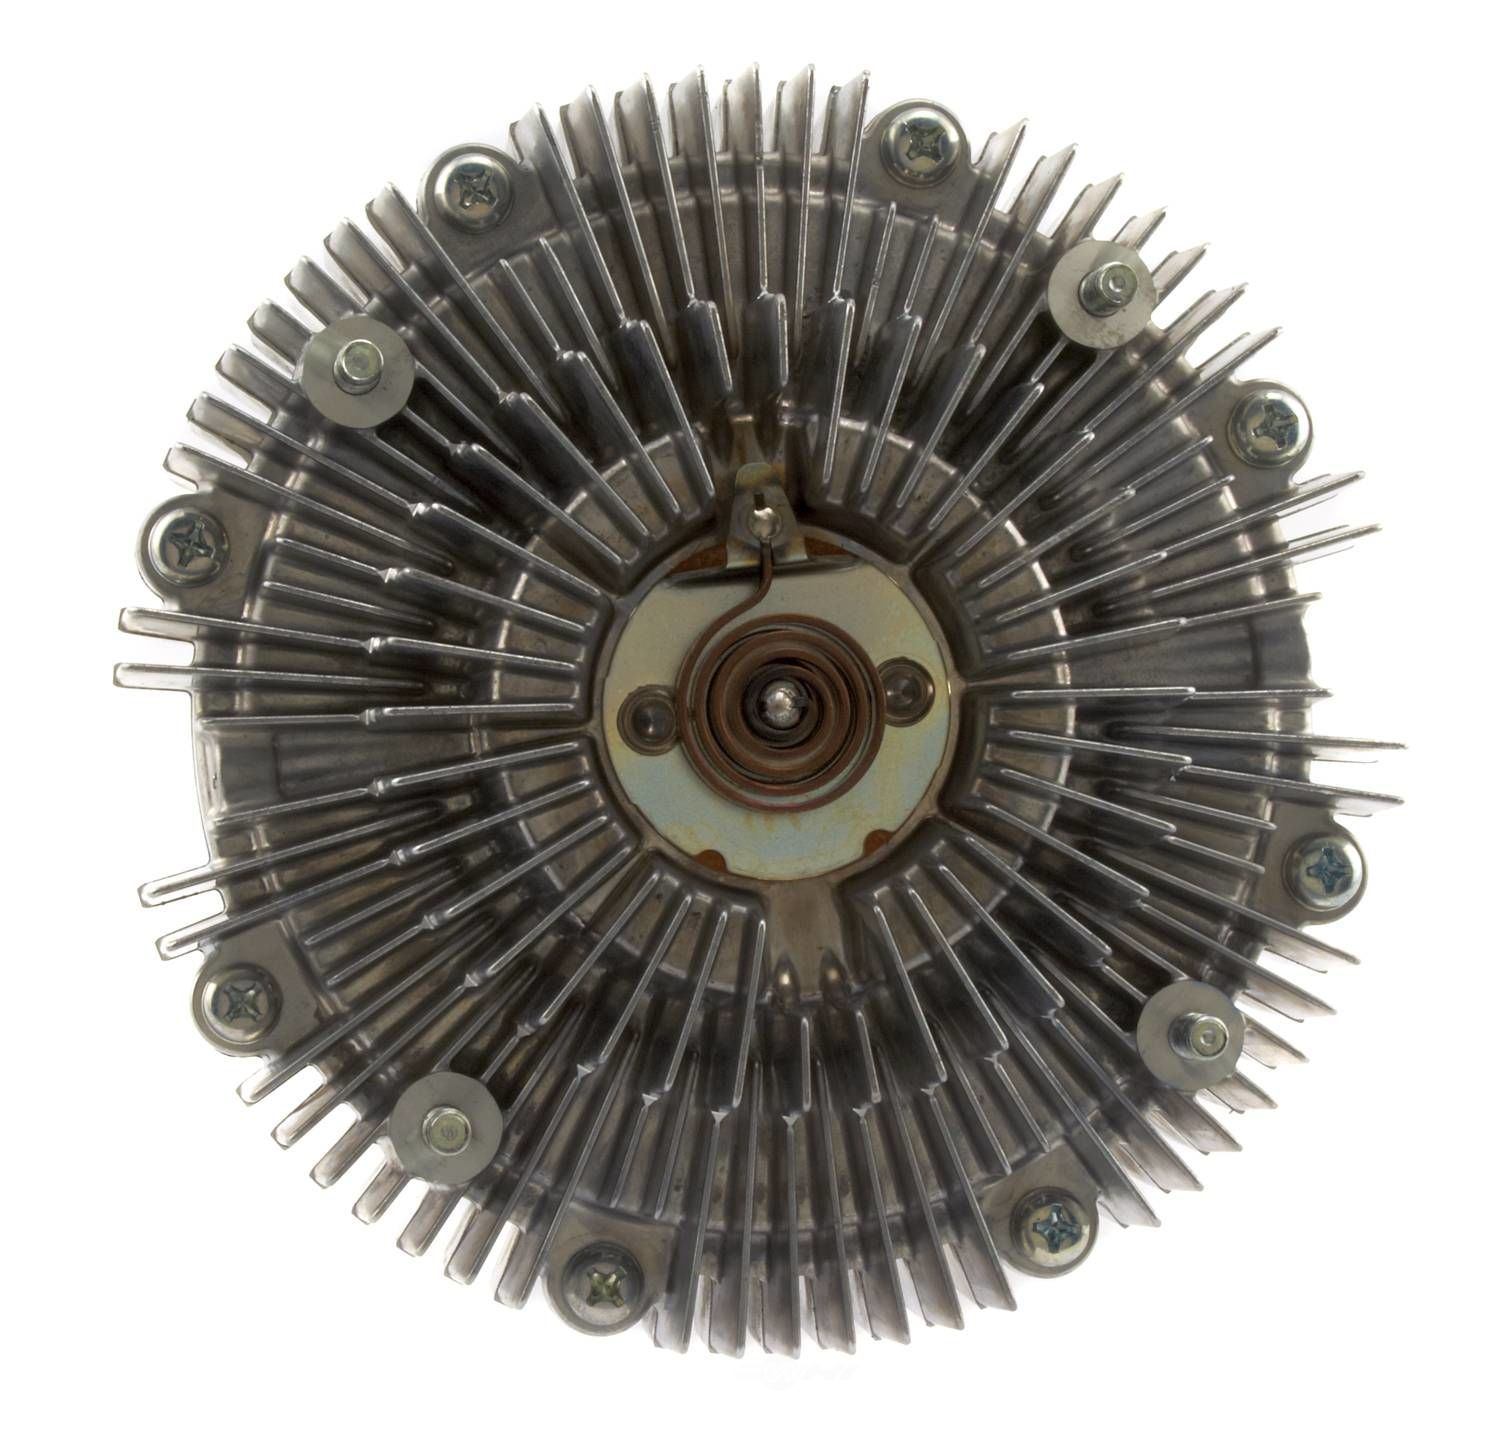 AISIN WORLD CORP. OF AMERICA - Engine Cooling Fan Clutch - AIS FCT-075